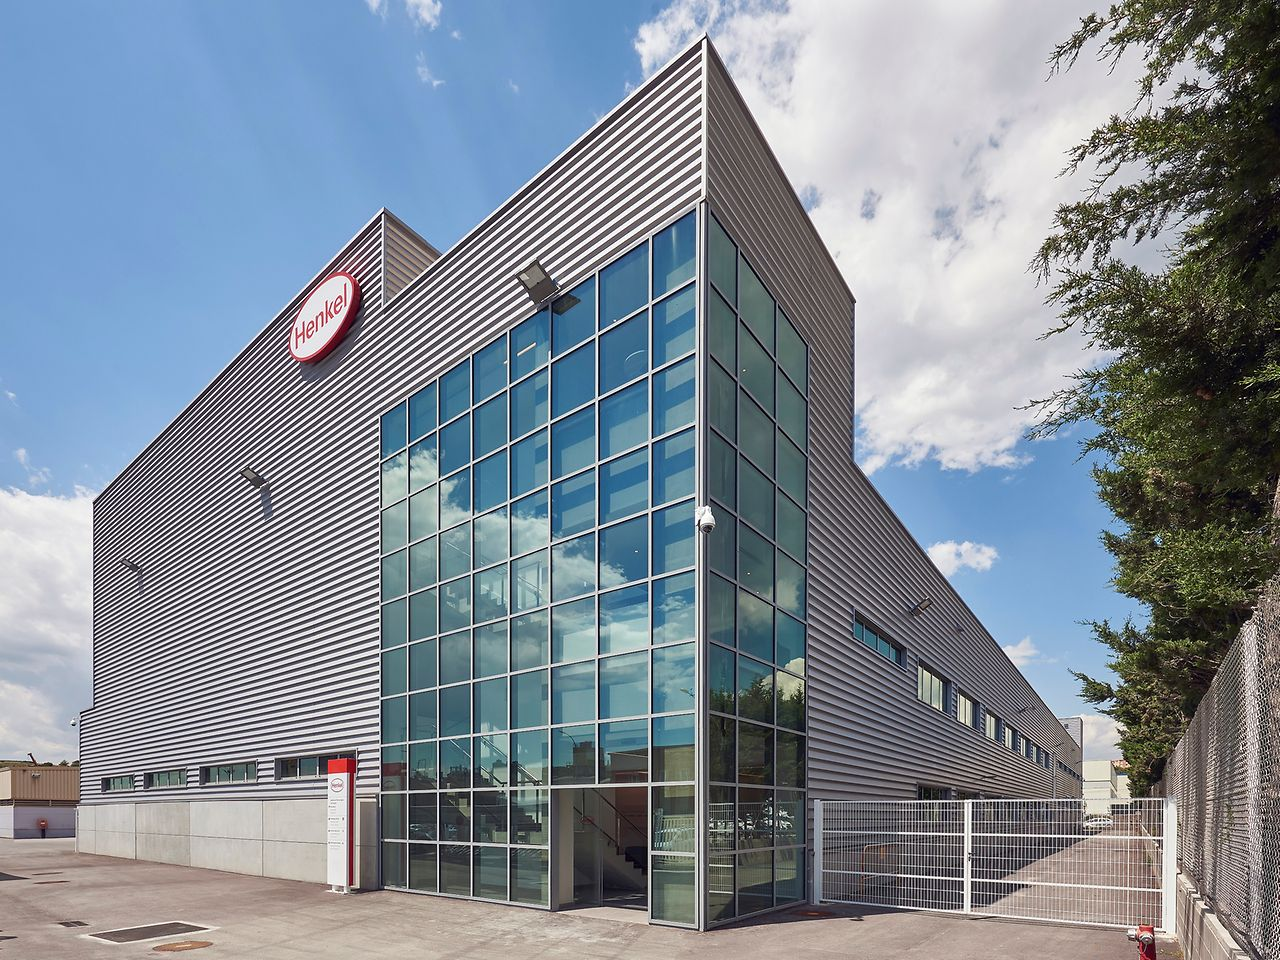 Henkel has opened its new production facility for high-performing aerospace applications at its site in Montornès del Vallès, Spain